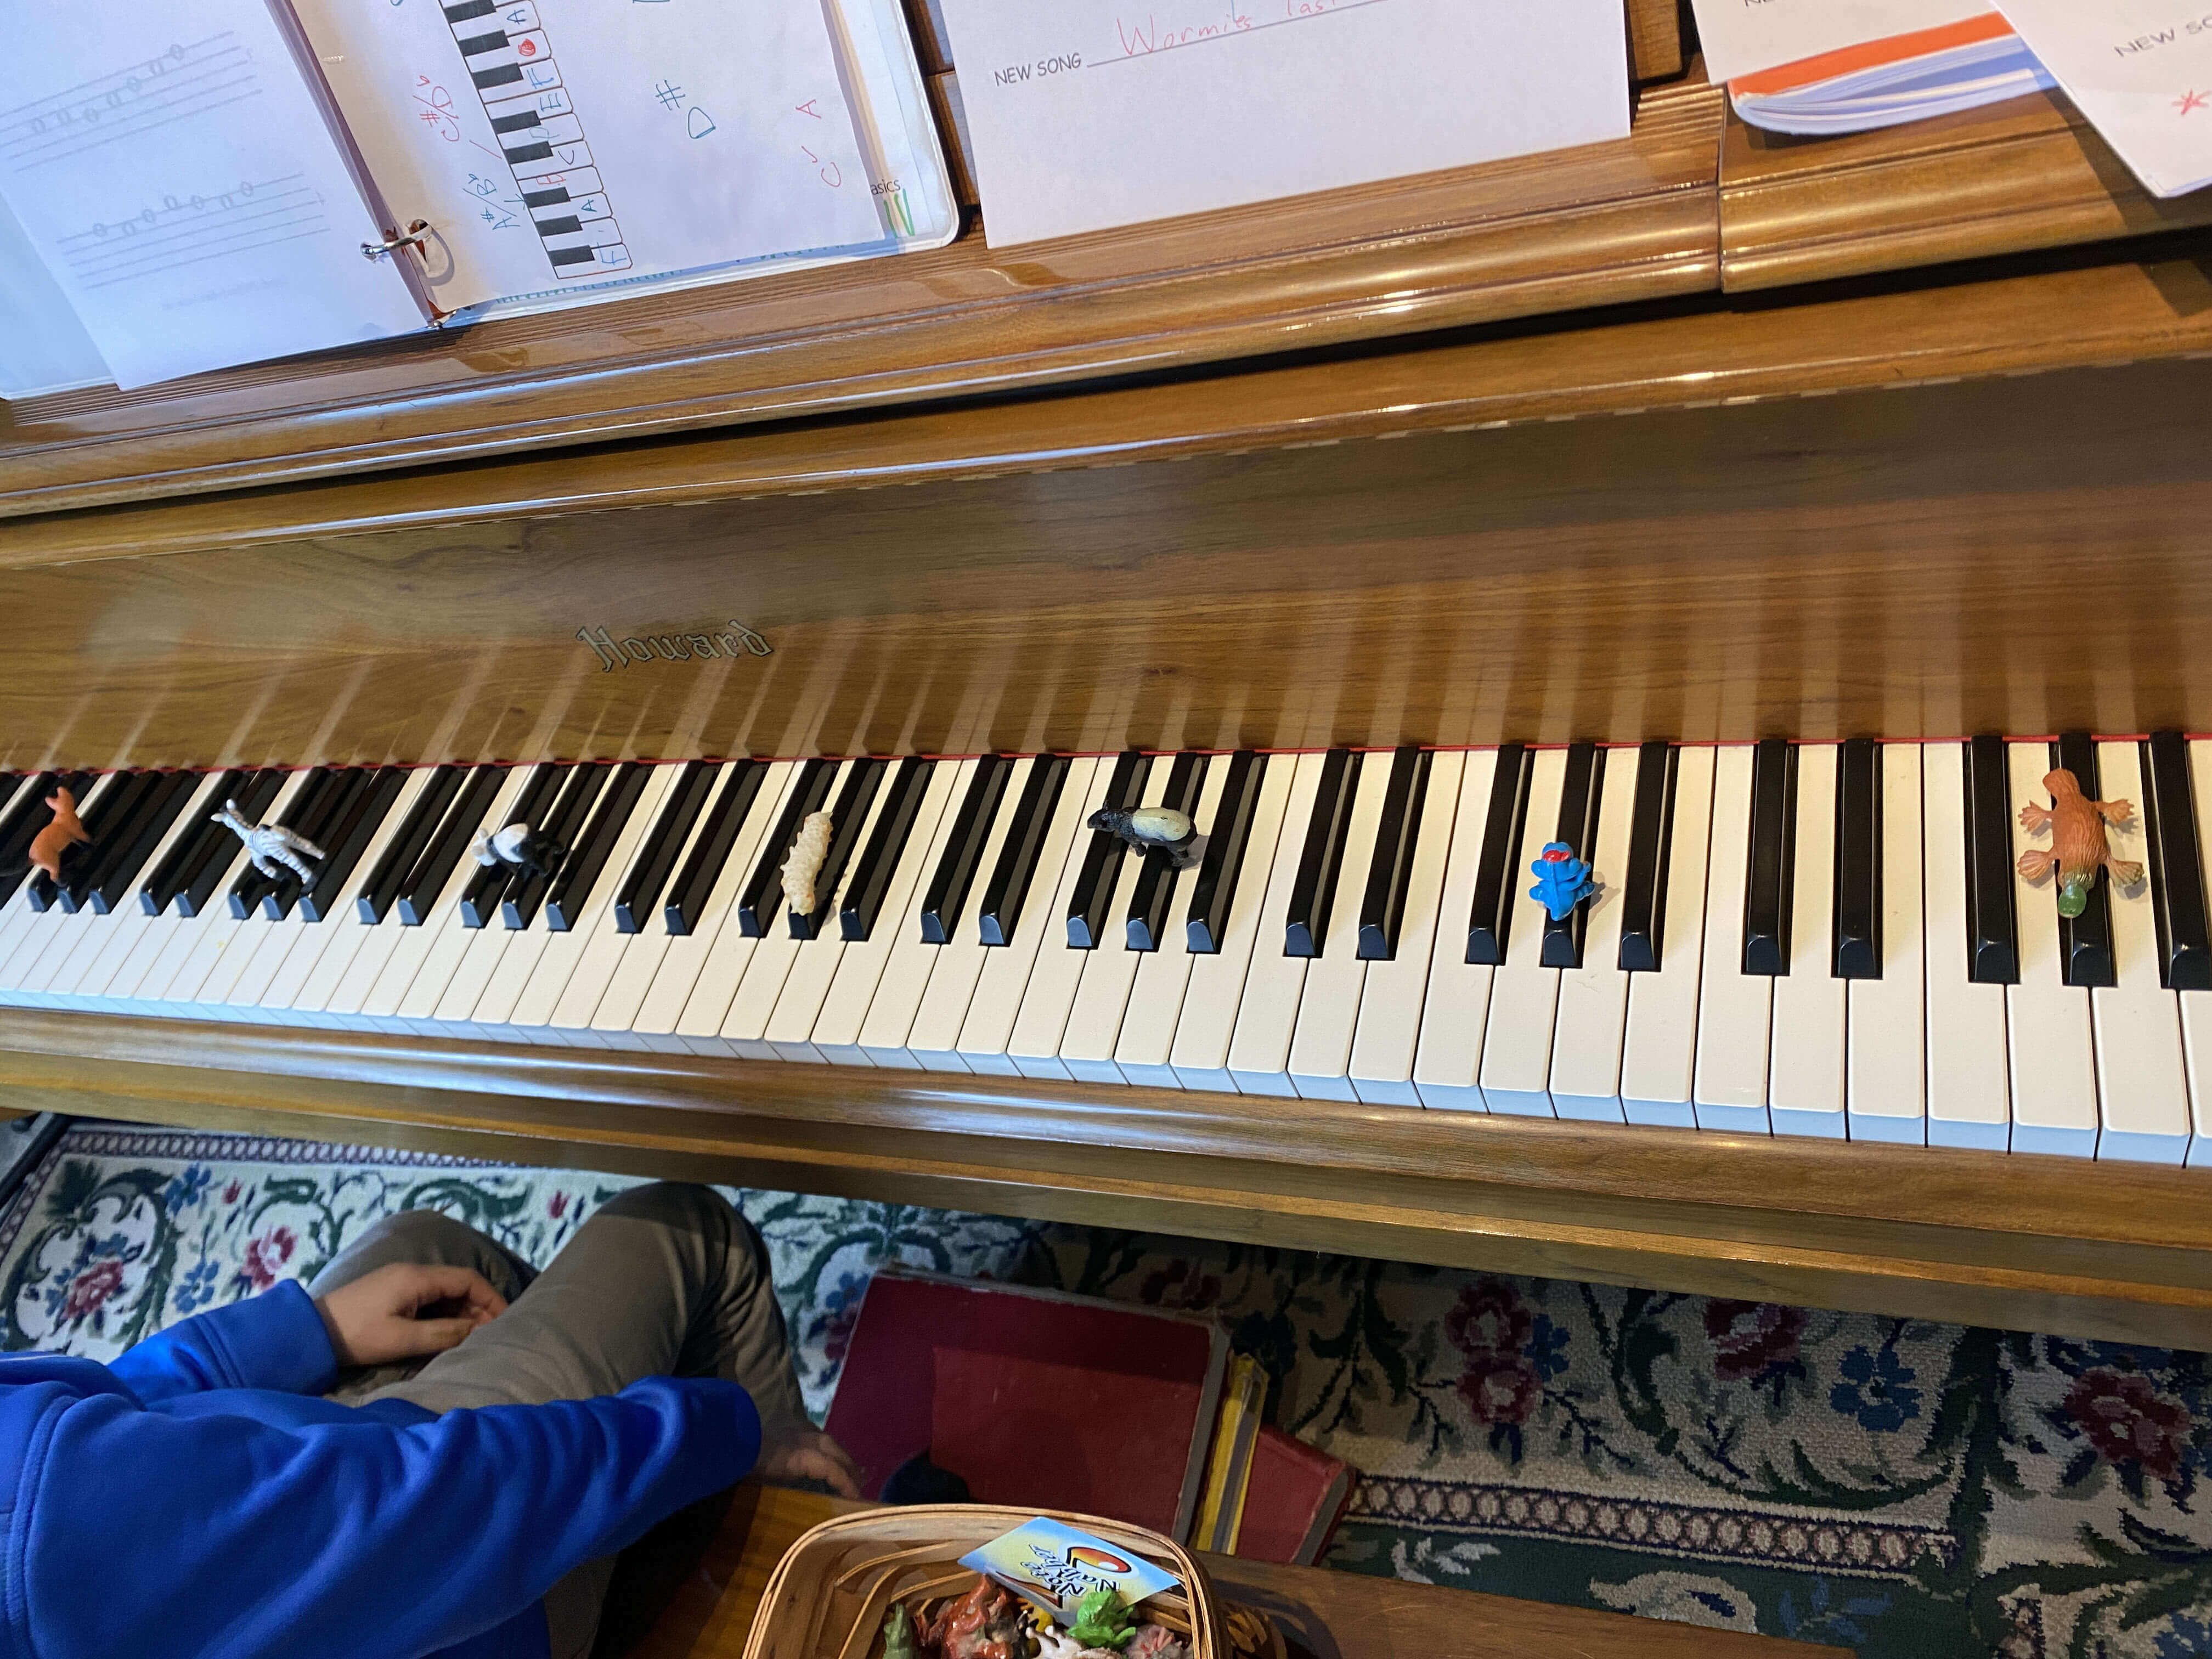 Piano keyboard with plastic animals placed on black keys